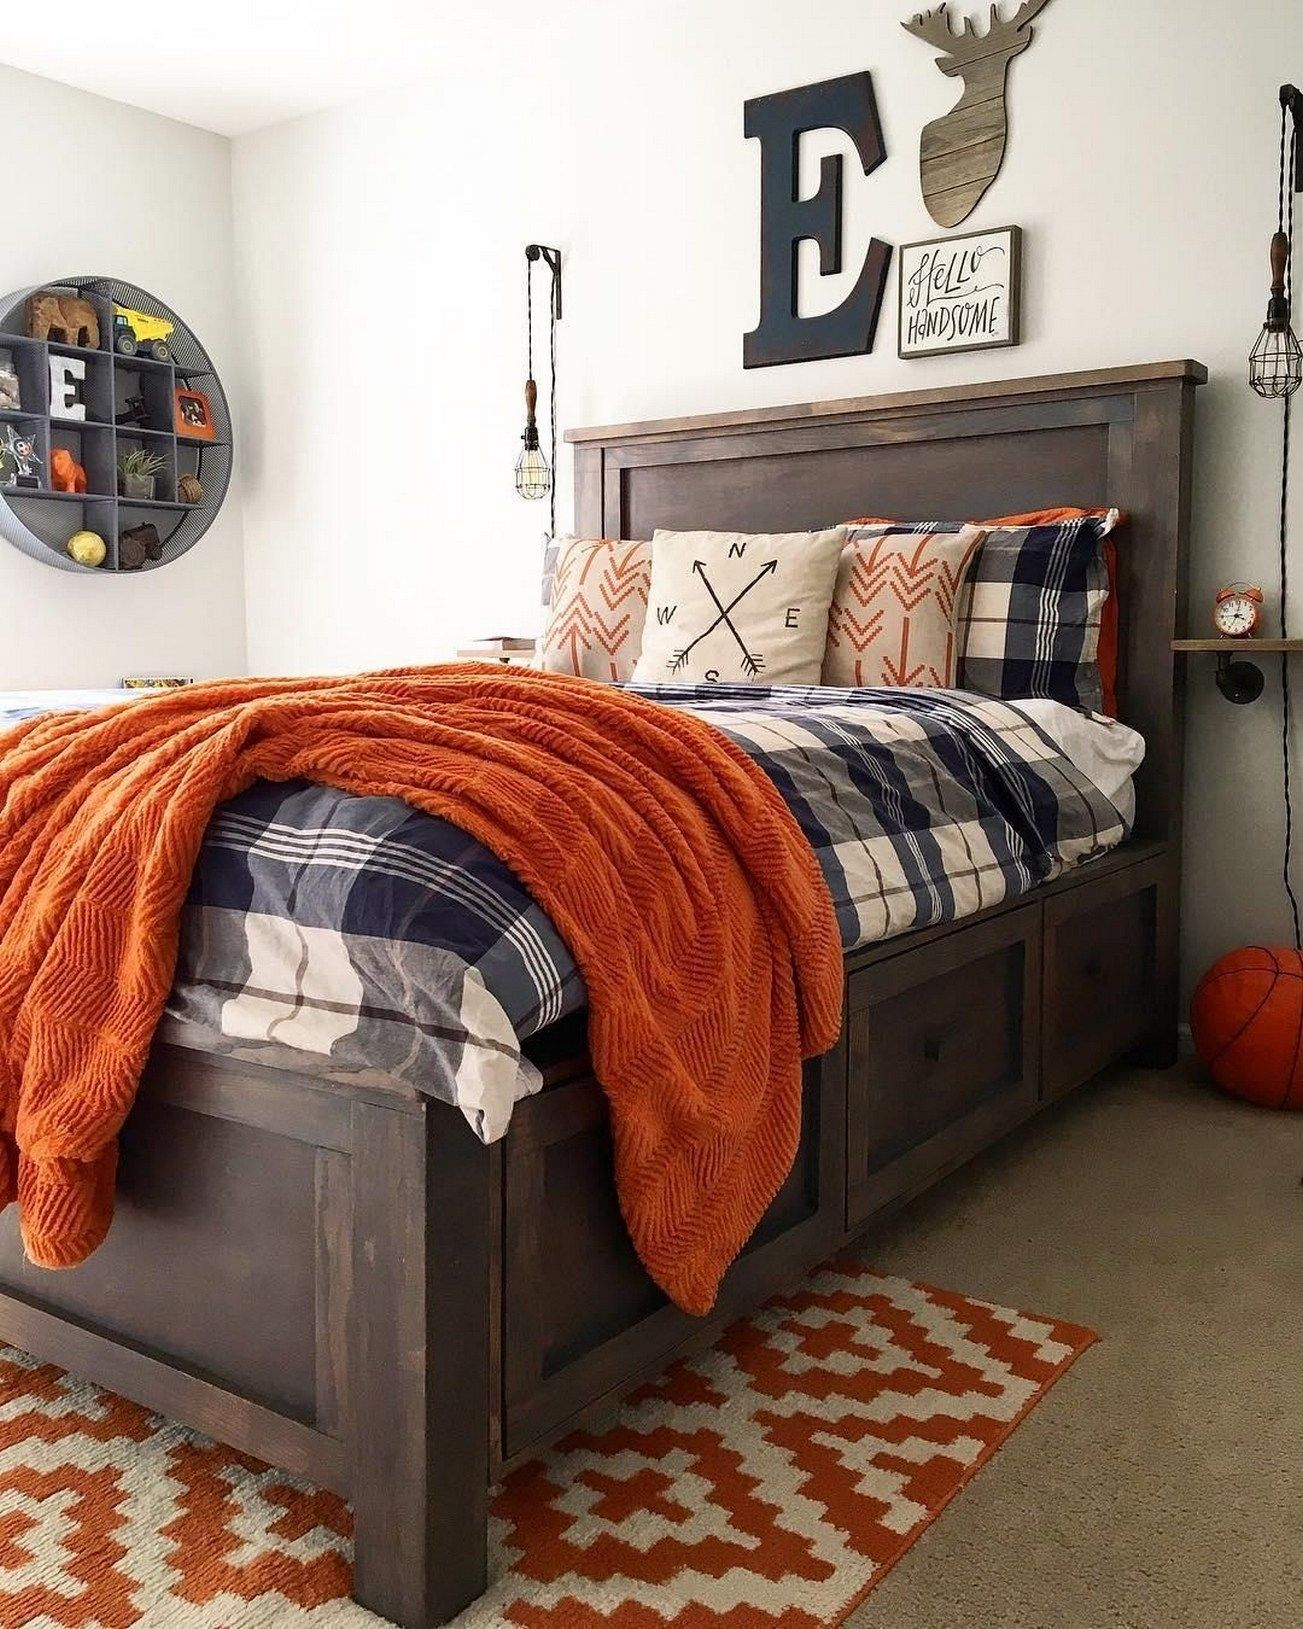 60 Amazing Cool Bedroom Ideas For Teenage Guys Small Rooms 1